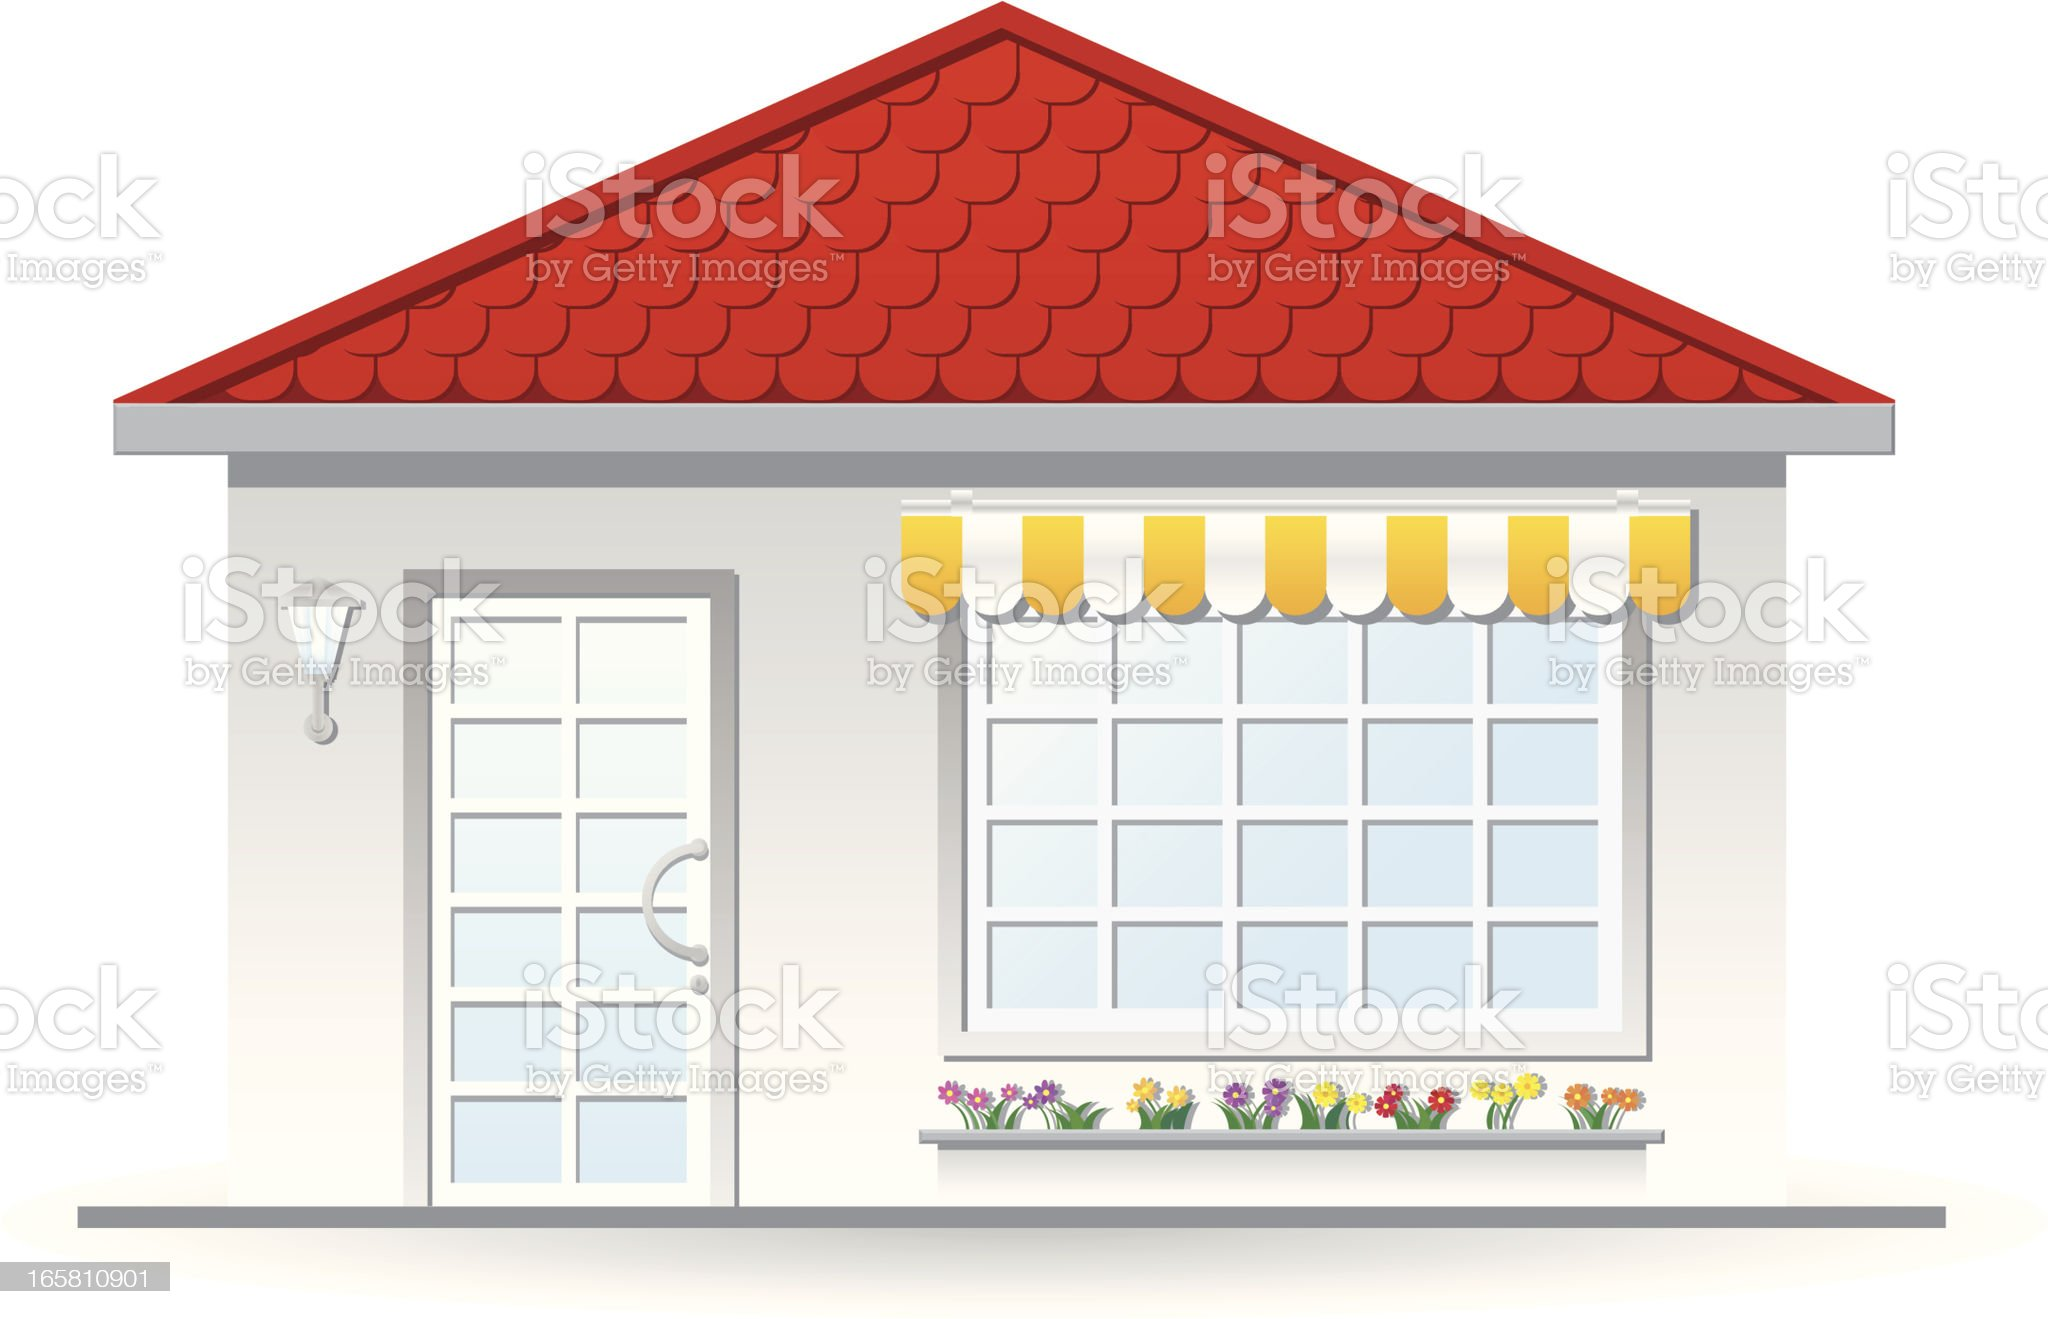 store icon royalty-free stock vector art